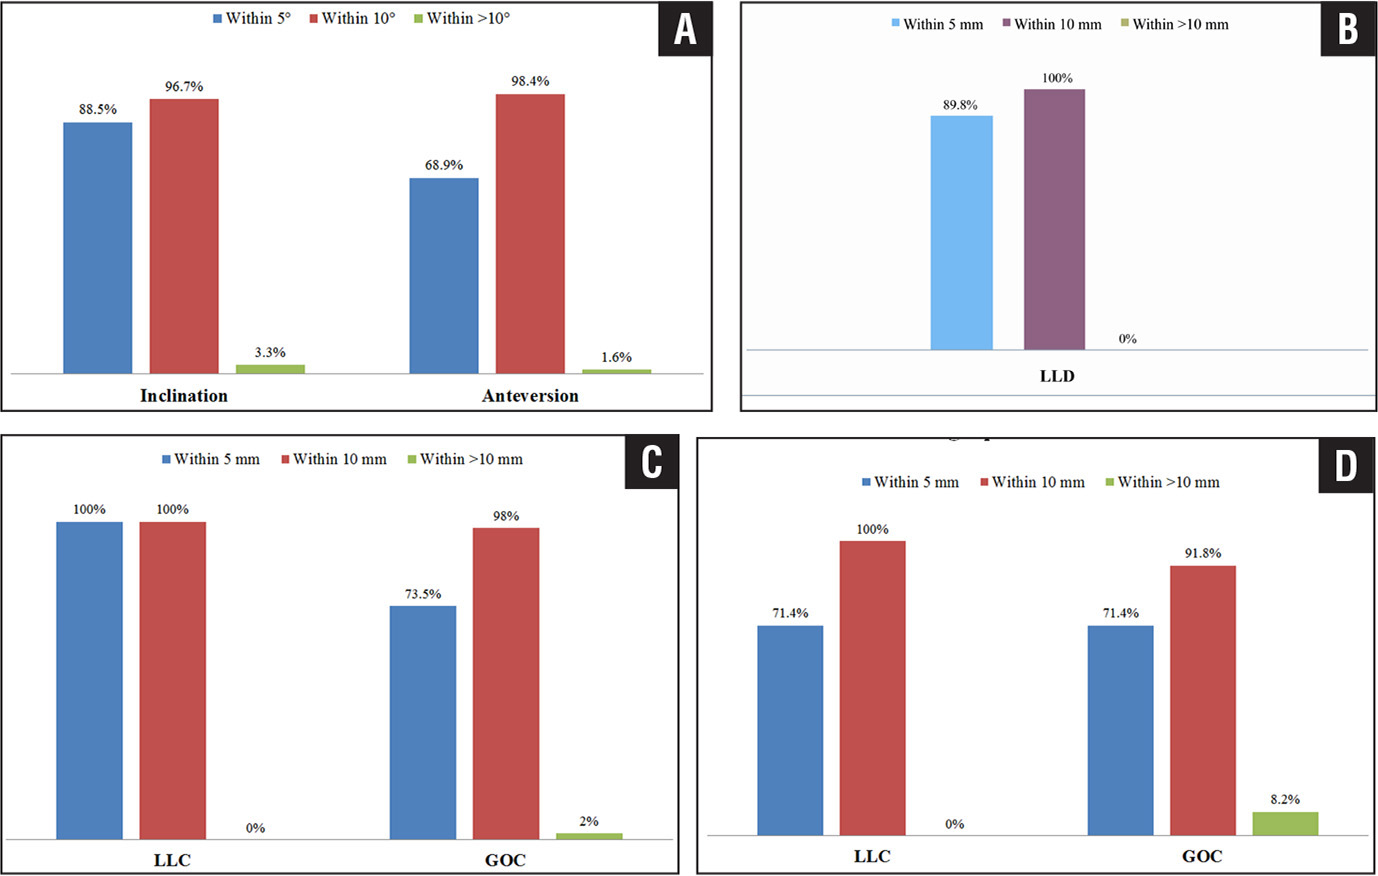 Comparison of robotic-measured inclination and anteversion angles with radiographic-measured angles (A). Leg-length discrepancy (LLD) on postoperative radiographs (B). Radiographic-measured leg-length change (LLC) and global offset change (GOC) (C). Comparison of robotic-measured leg-length change (LLC) and global offset change (GOC) with radiographic-measured distances (D).